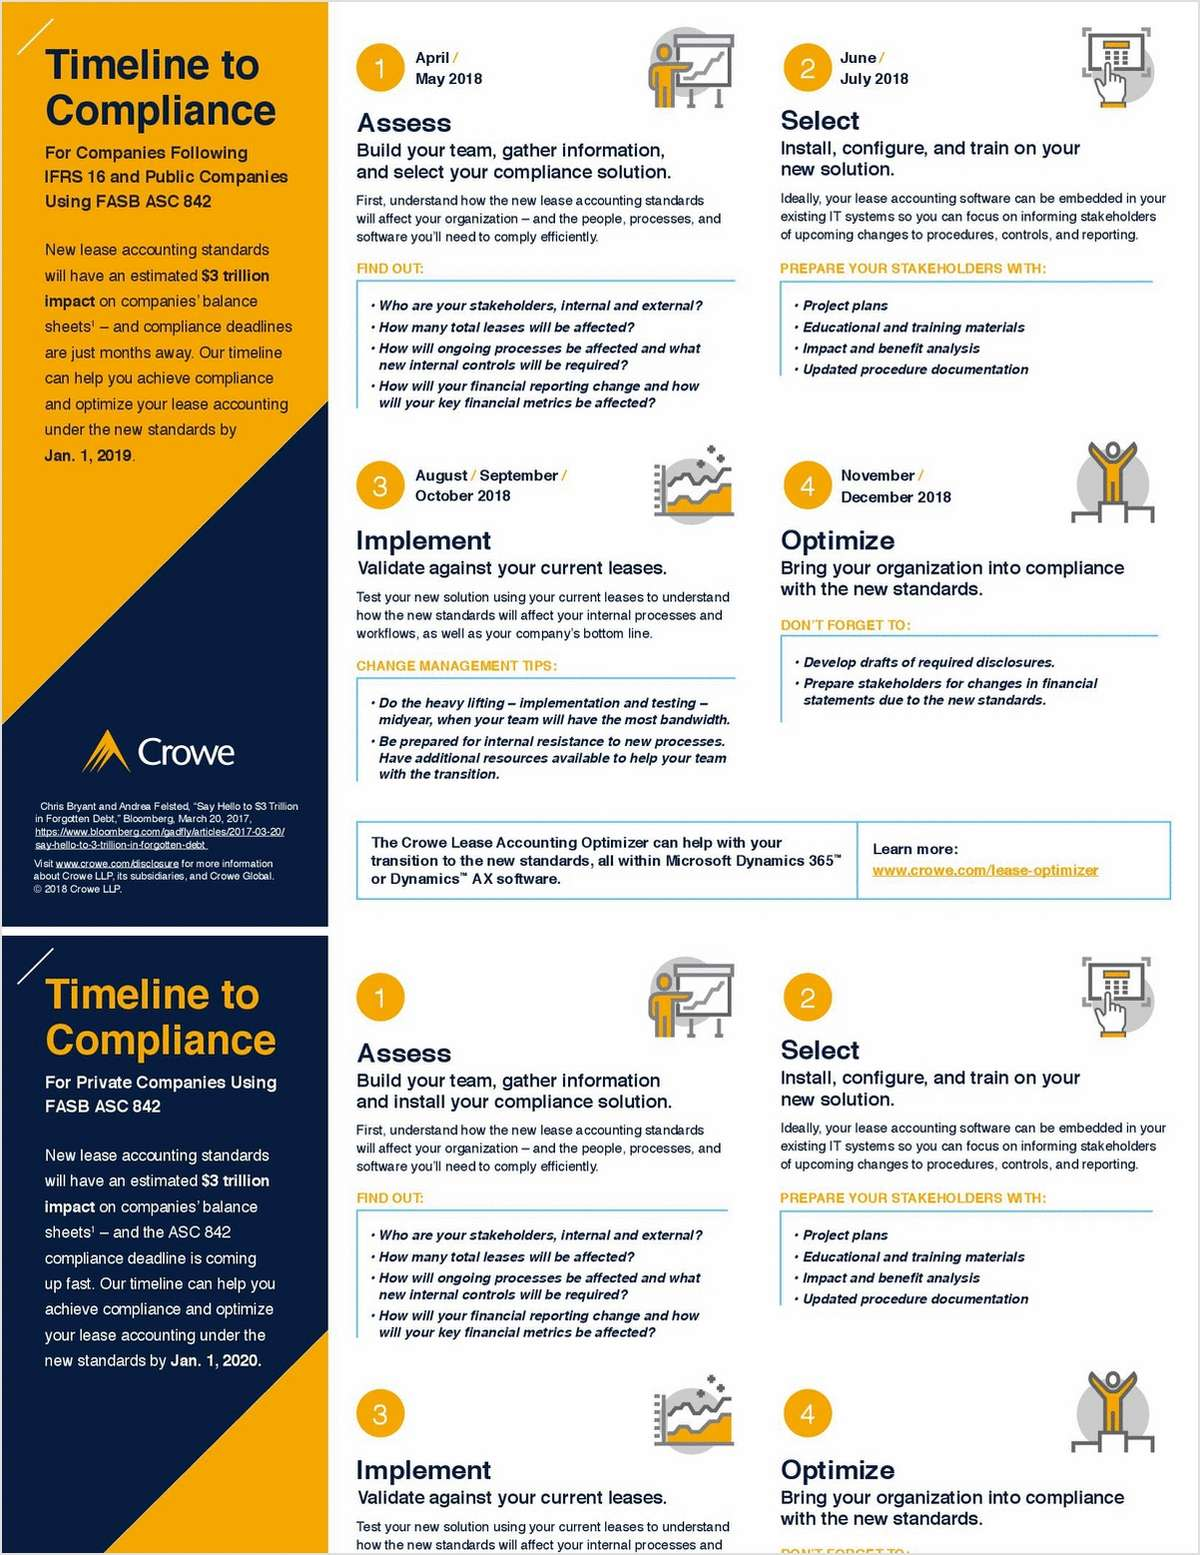 Timeline to Compliance: For Companies Following IFRS 16 and Public Companies Using FASB ASC 842